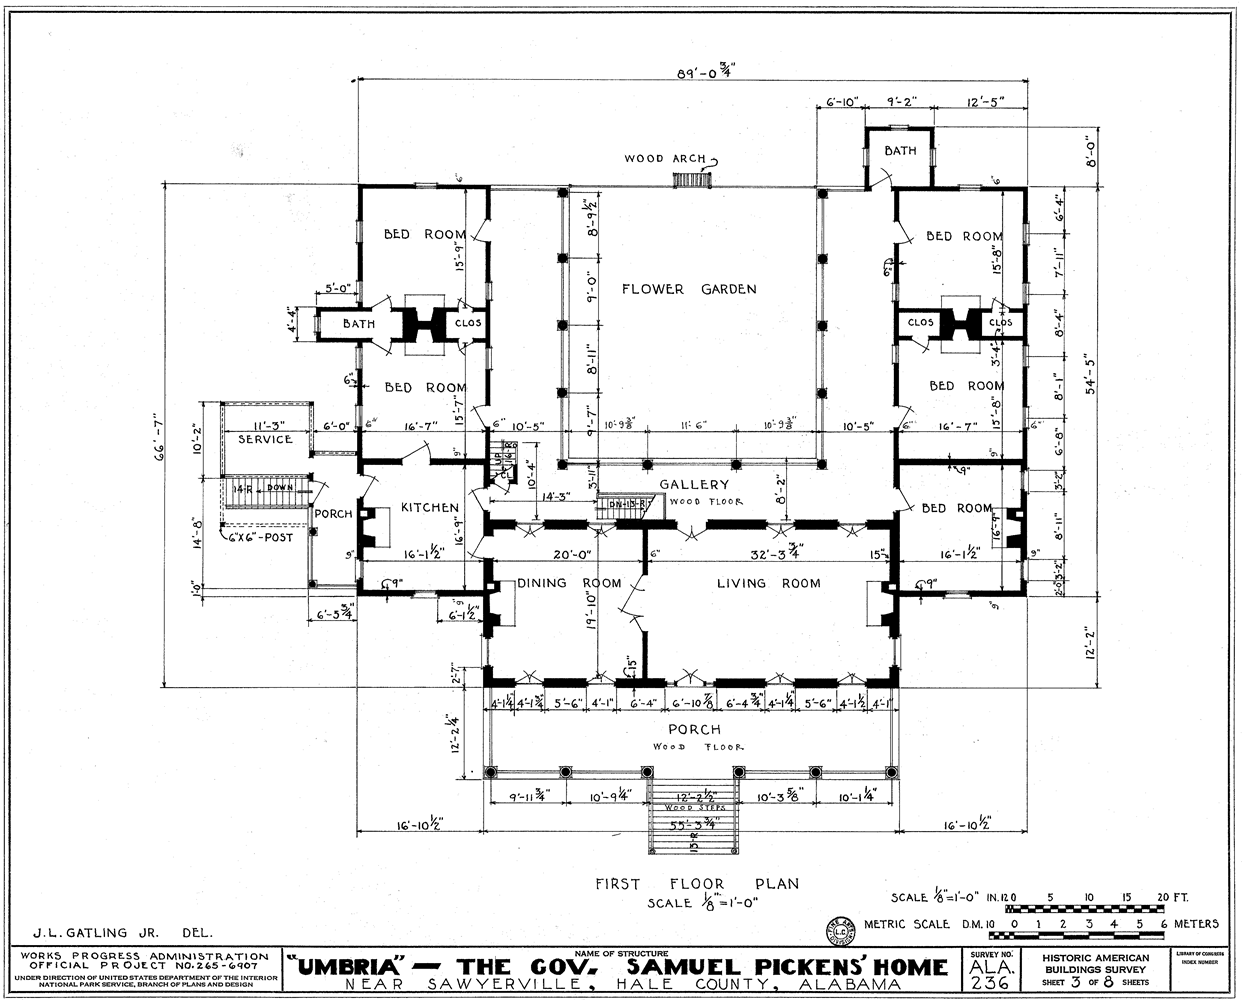 architectural floor plans description umbria plantation architectural plan of main floorpng floor plans 2 pinterest architectural floor plans